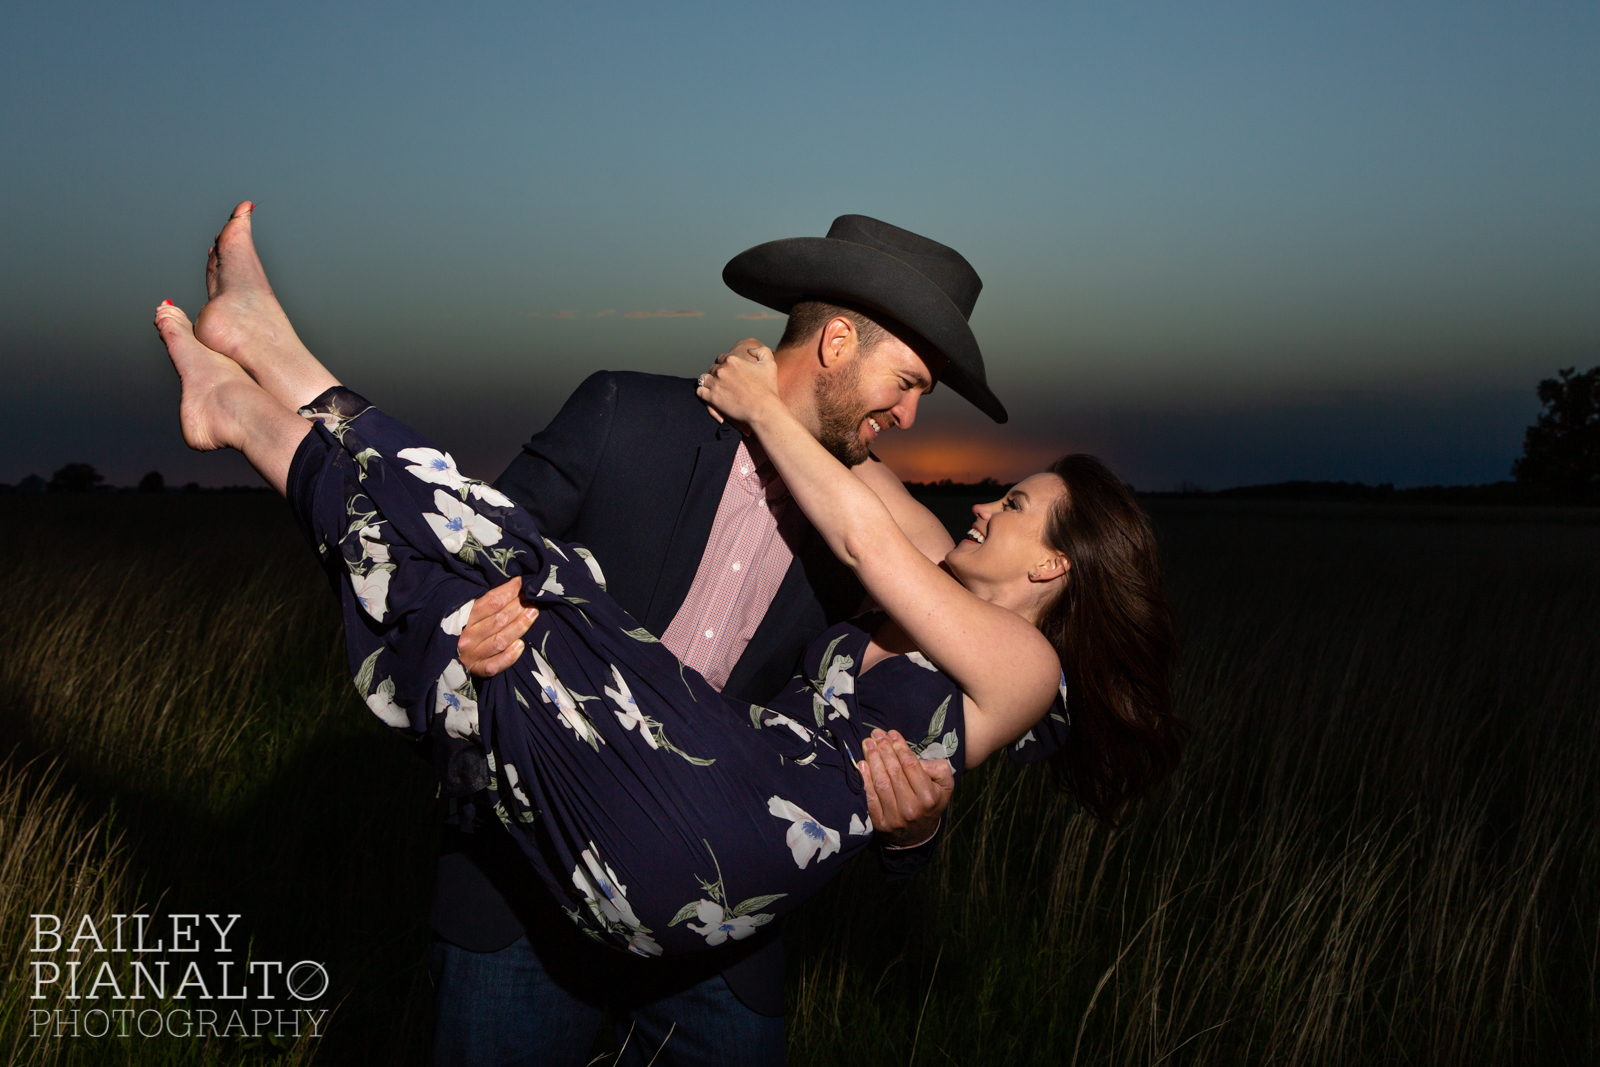 Pink & Navy At-Home Countryside Cowboy Spring Sunset Engagement Inspiration